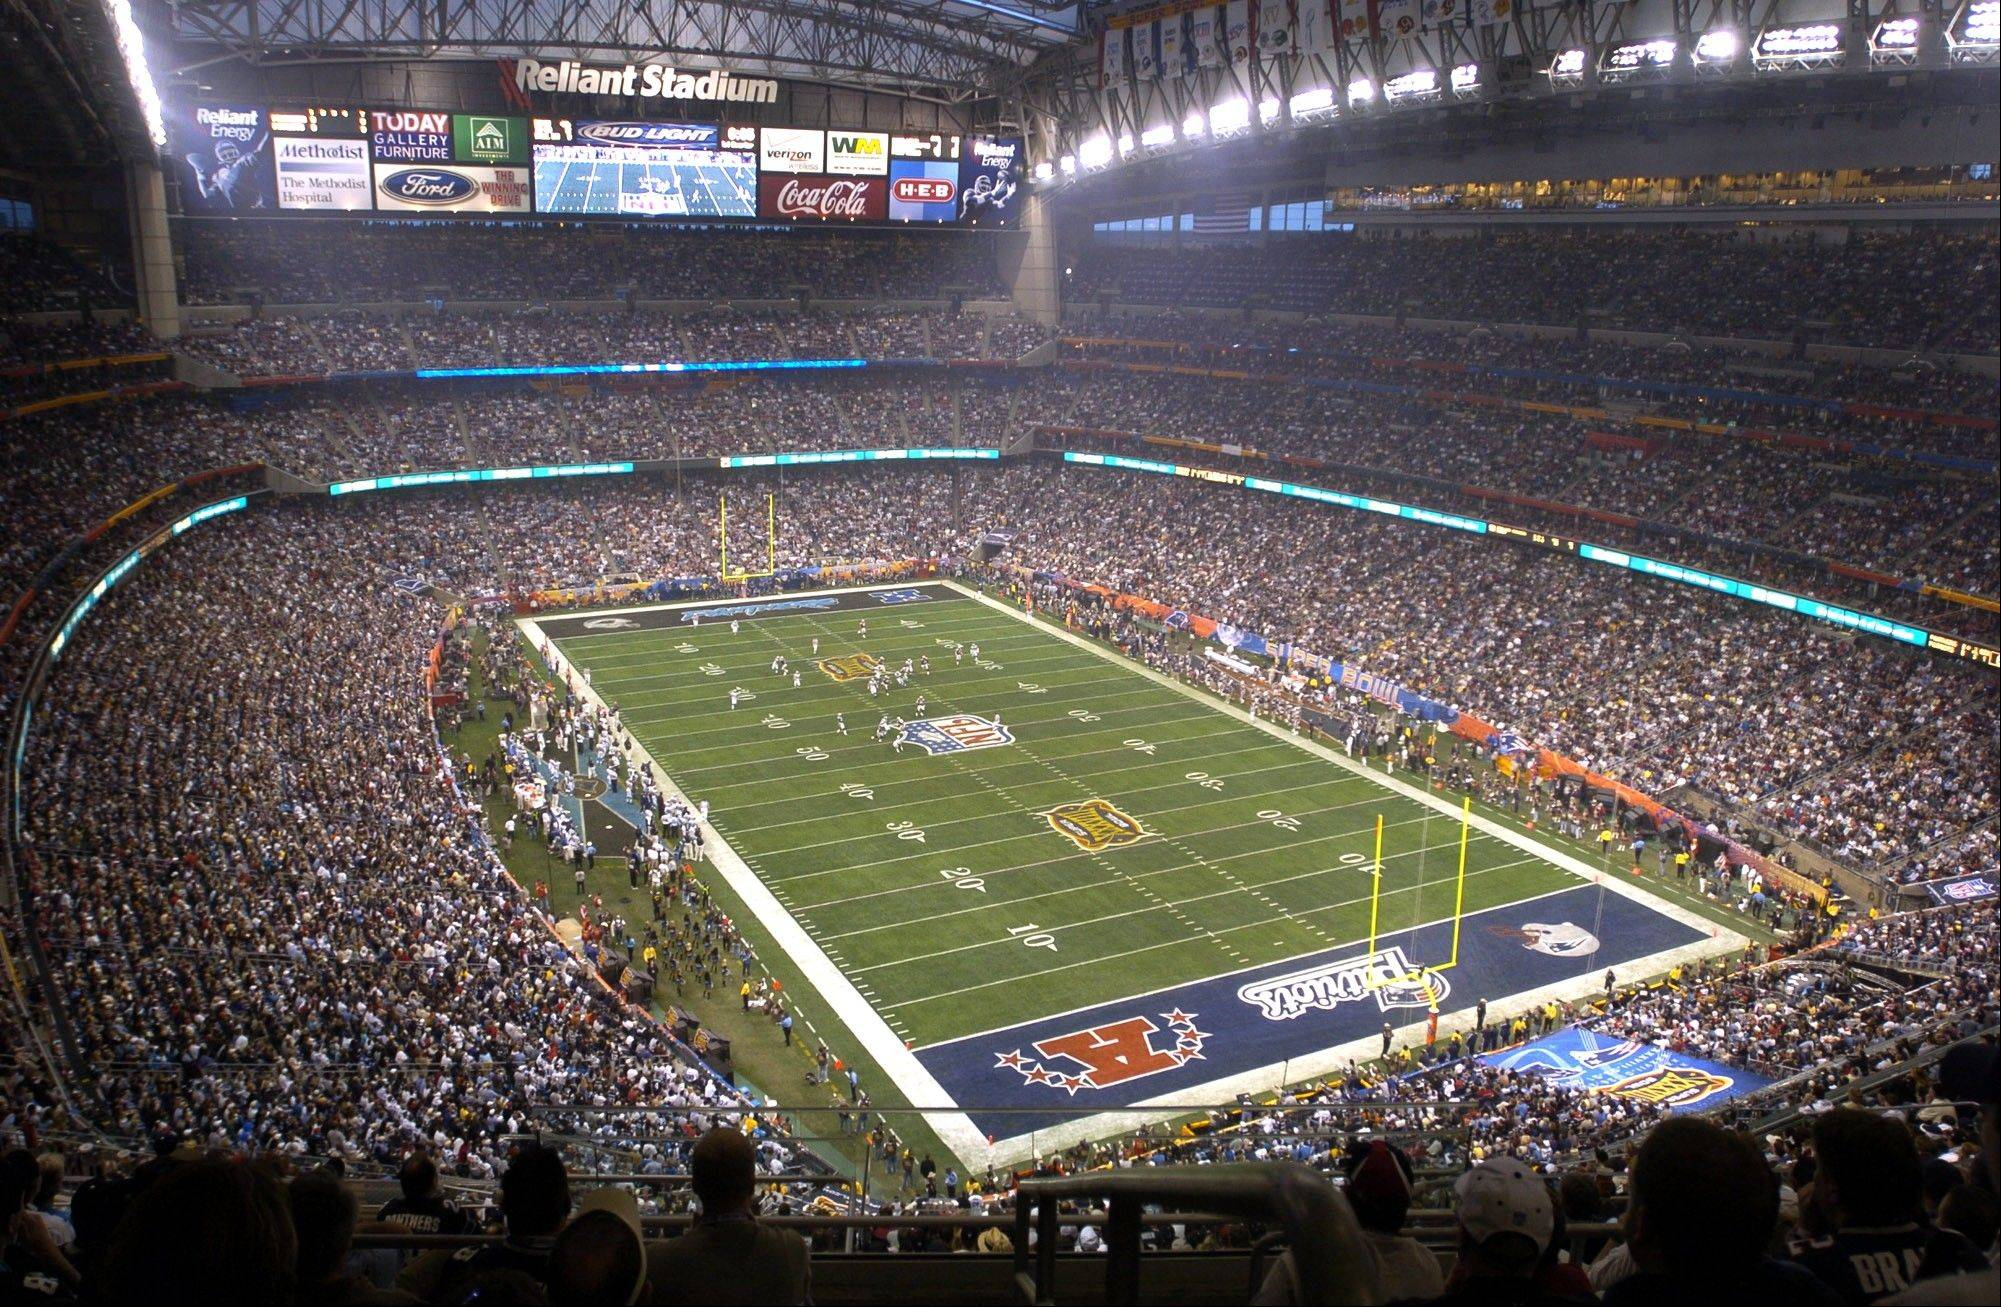 In this Feb. 1, 2004 file photo,�Houston�s Reliant Stadium hosts a sellout crowd at Super Bowl XXXVIII between the Carolina Panthers and the New England Patriots in Houston. NFL owners will vote on the sites of the 50th and 51st Super Bowls on Tuesday, May 21, 2013 at their spring meetings. The San Francisco area, where a new stadium is being built in Santa Clara, and South Florida are competing for the the 50th edition, to be held in February 2016.